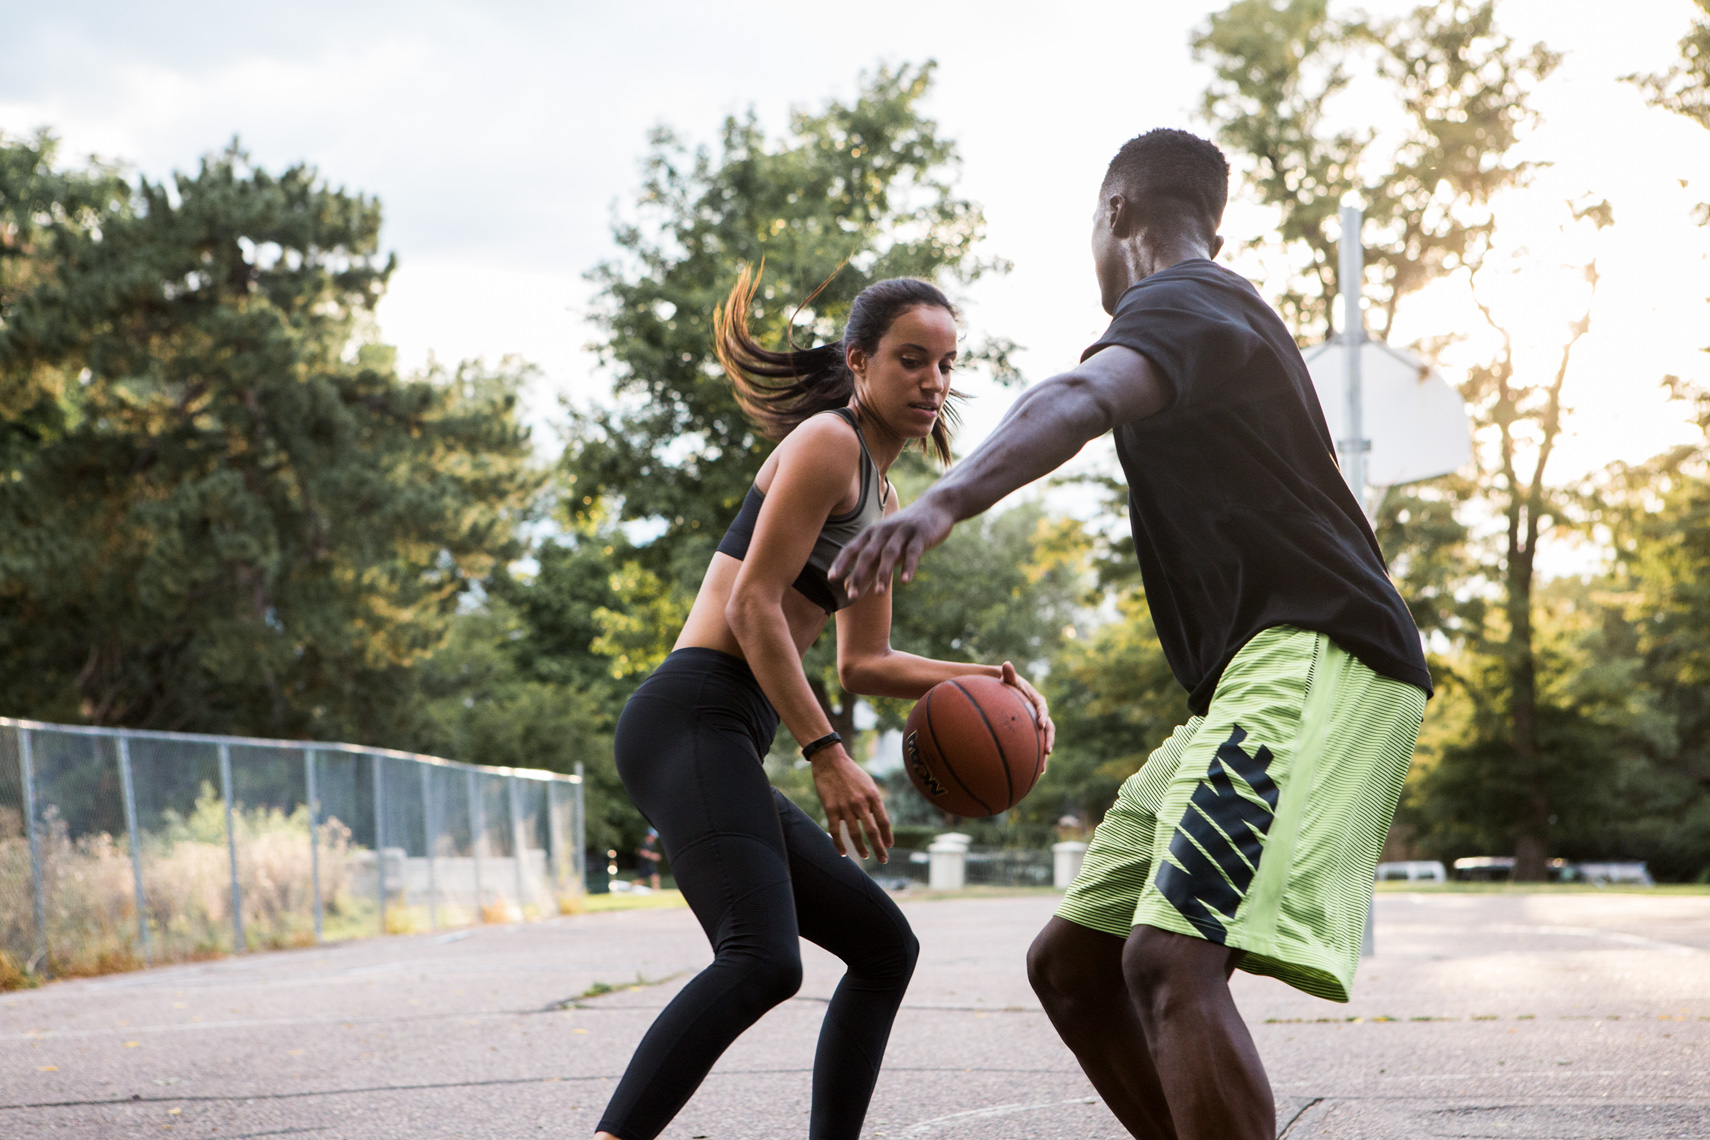 Man and woman playing basketball outdoors